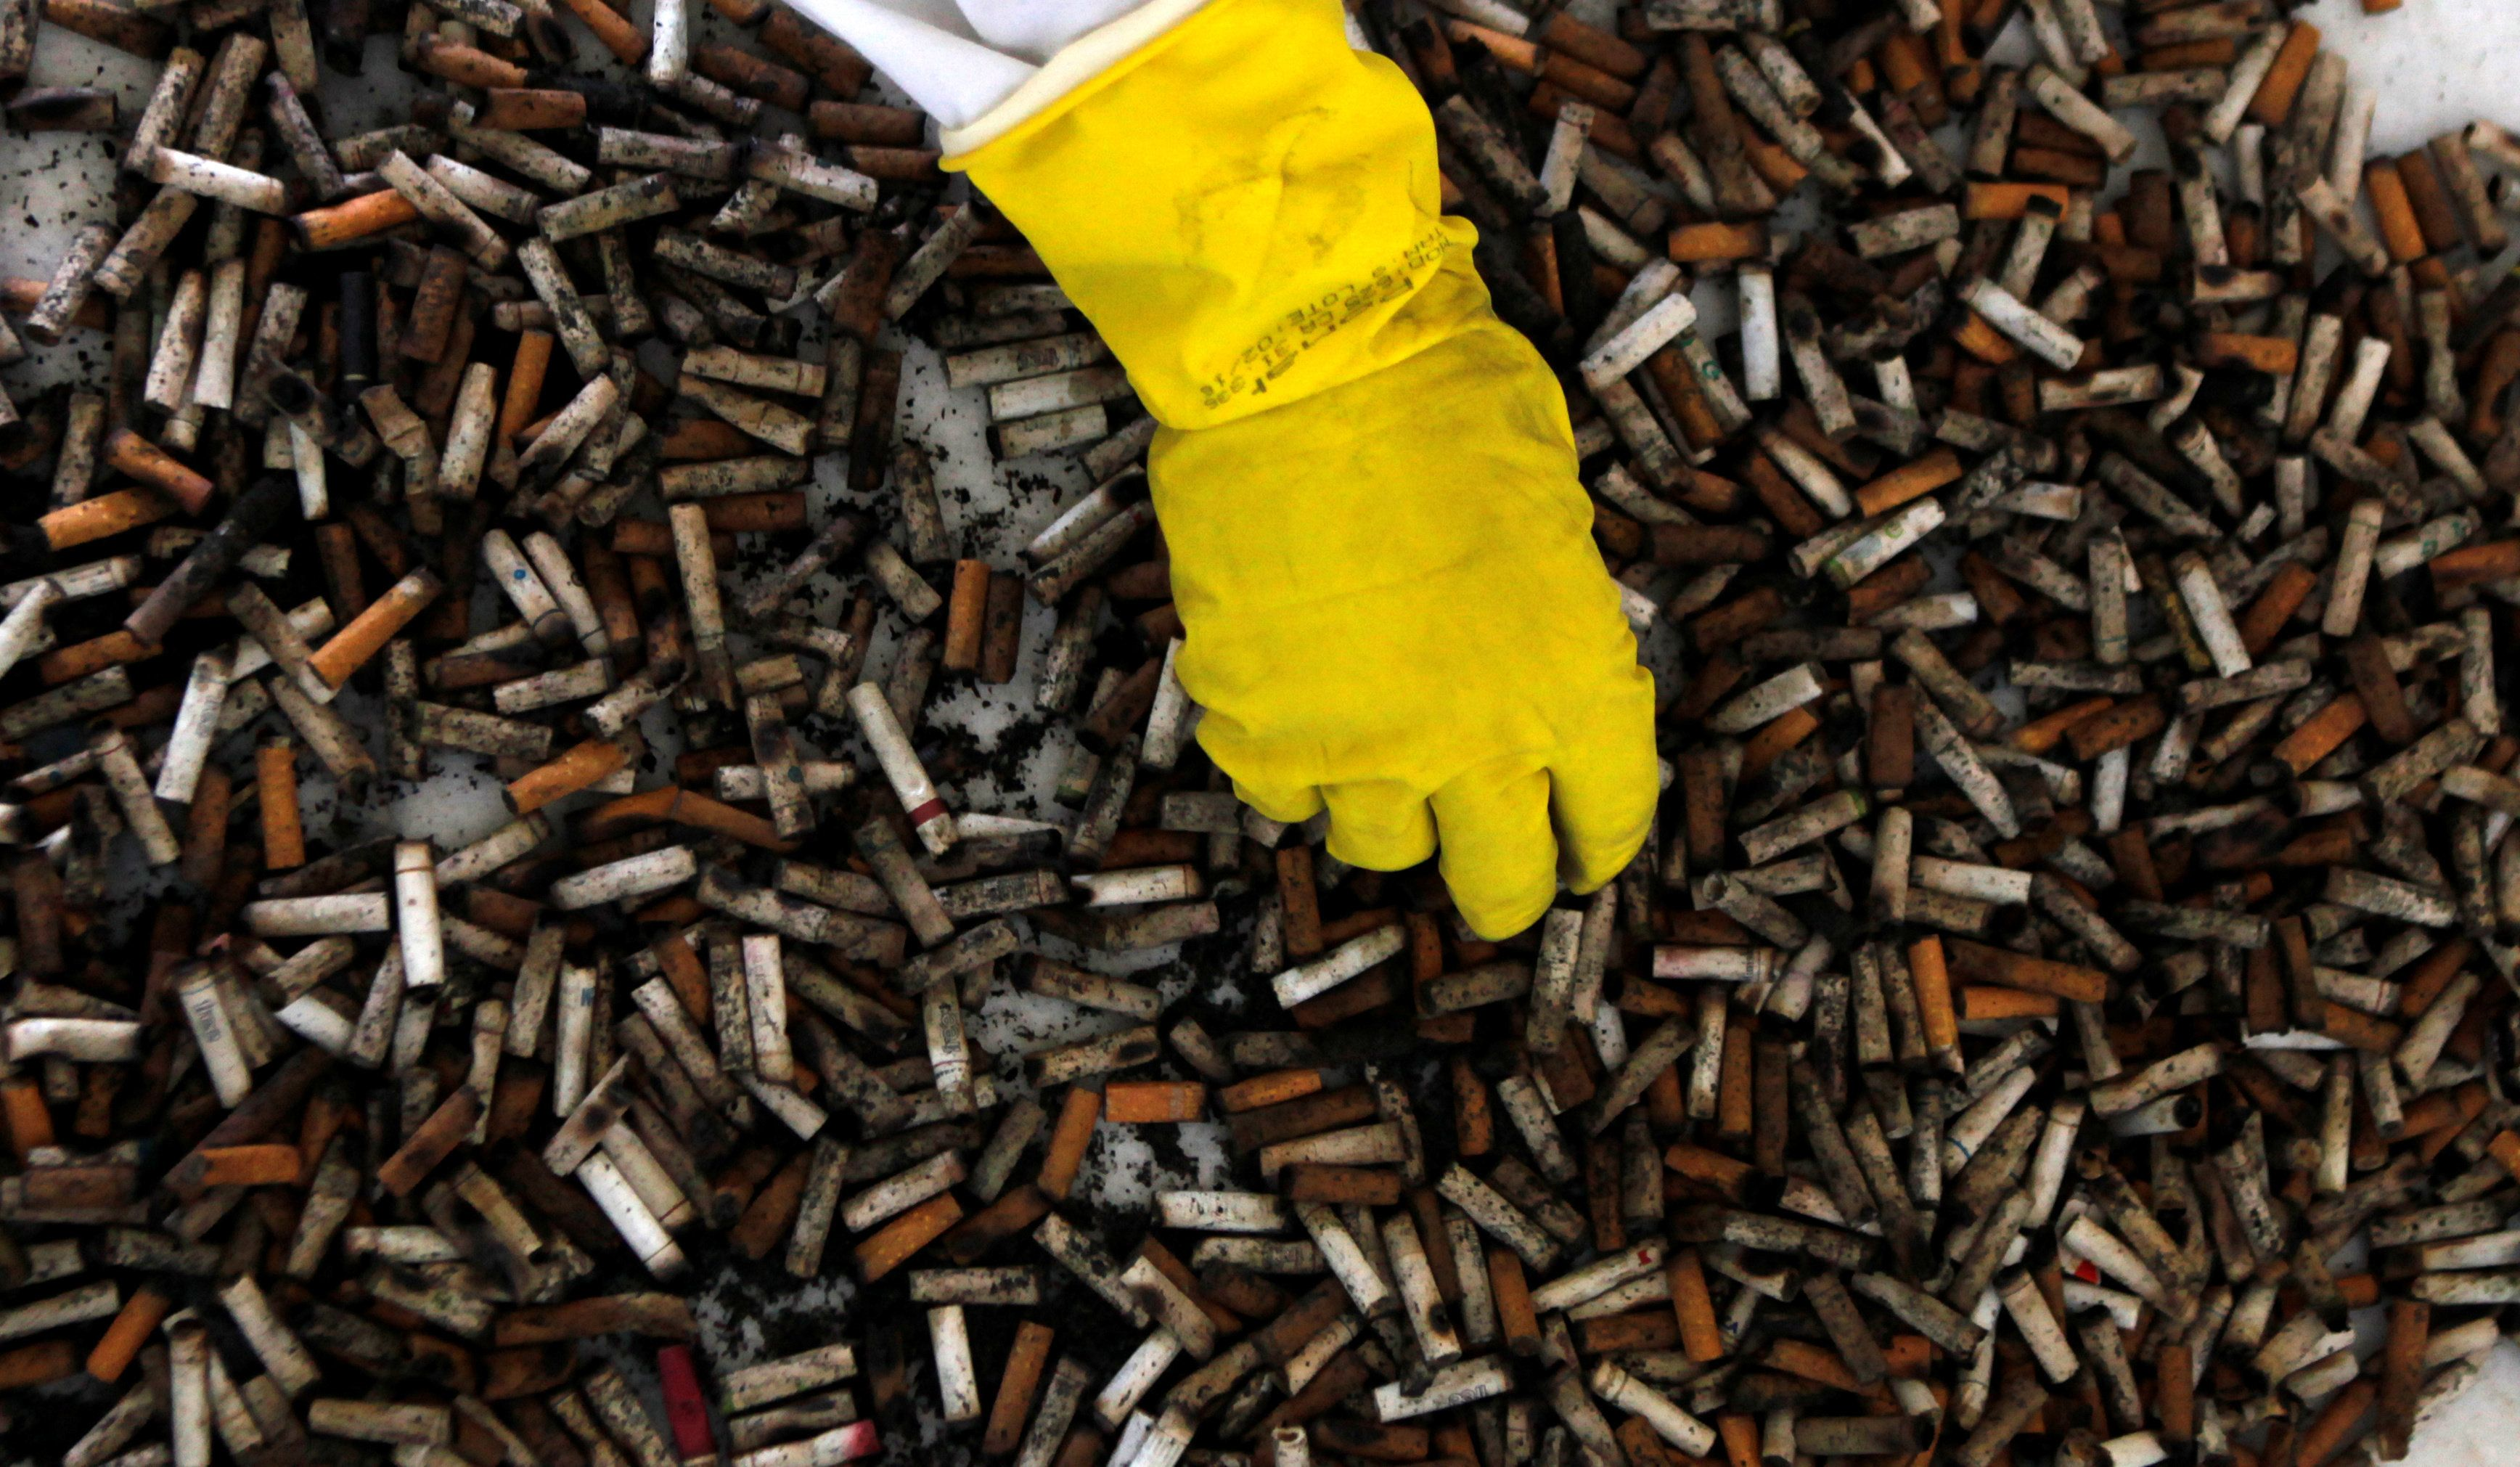 A Scientist Has A Remarkable Plan To Harness The Billions Of Cigarette Butts We Drop Every